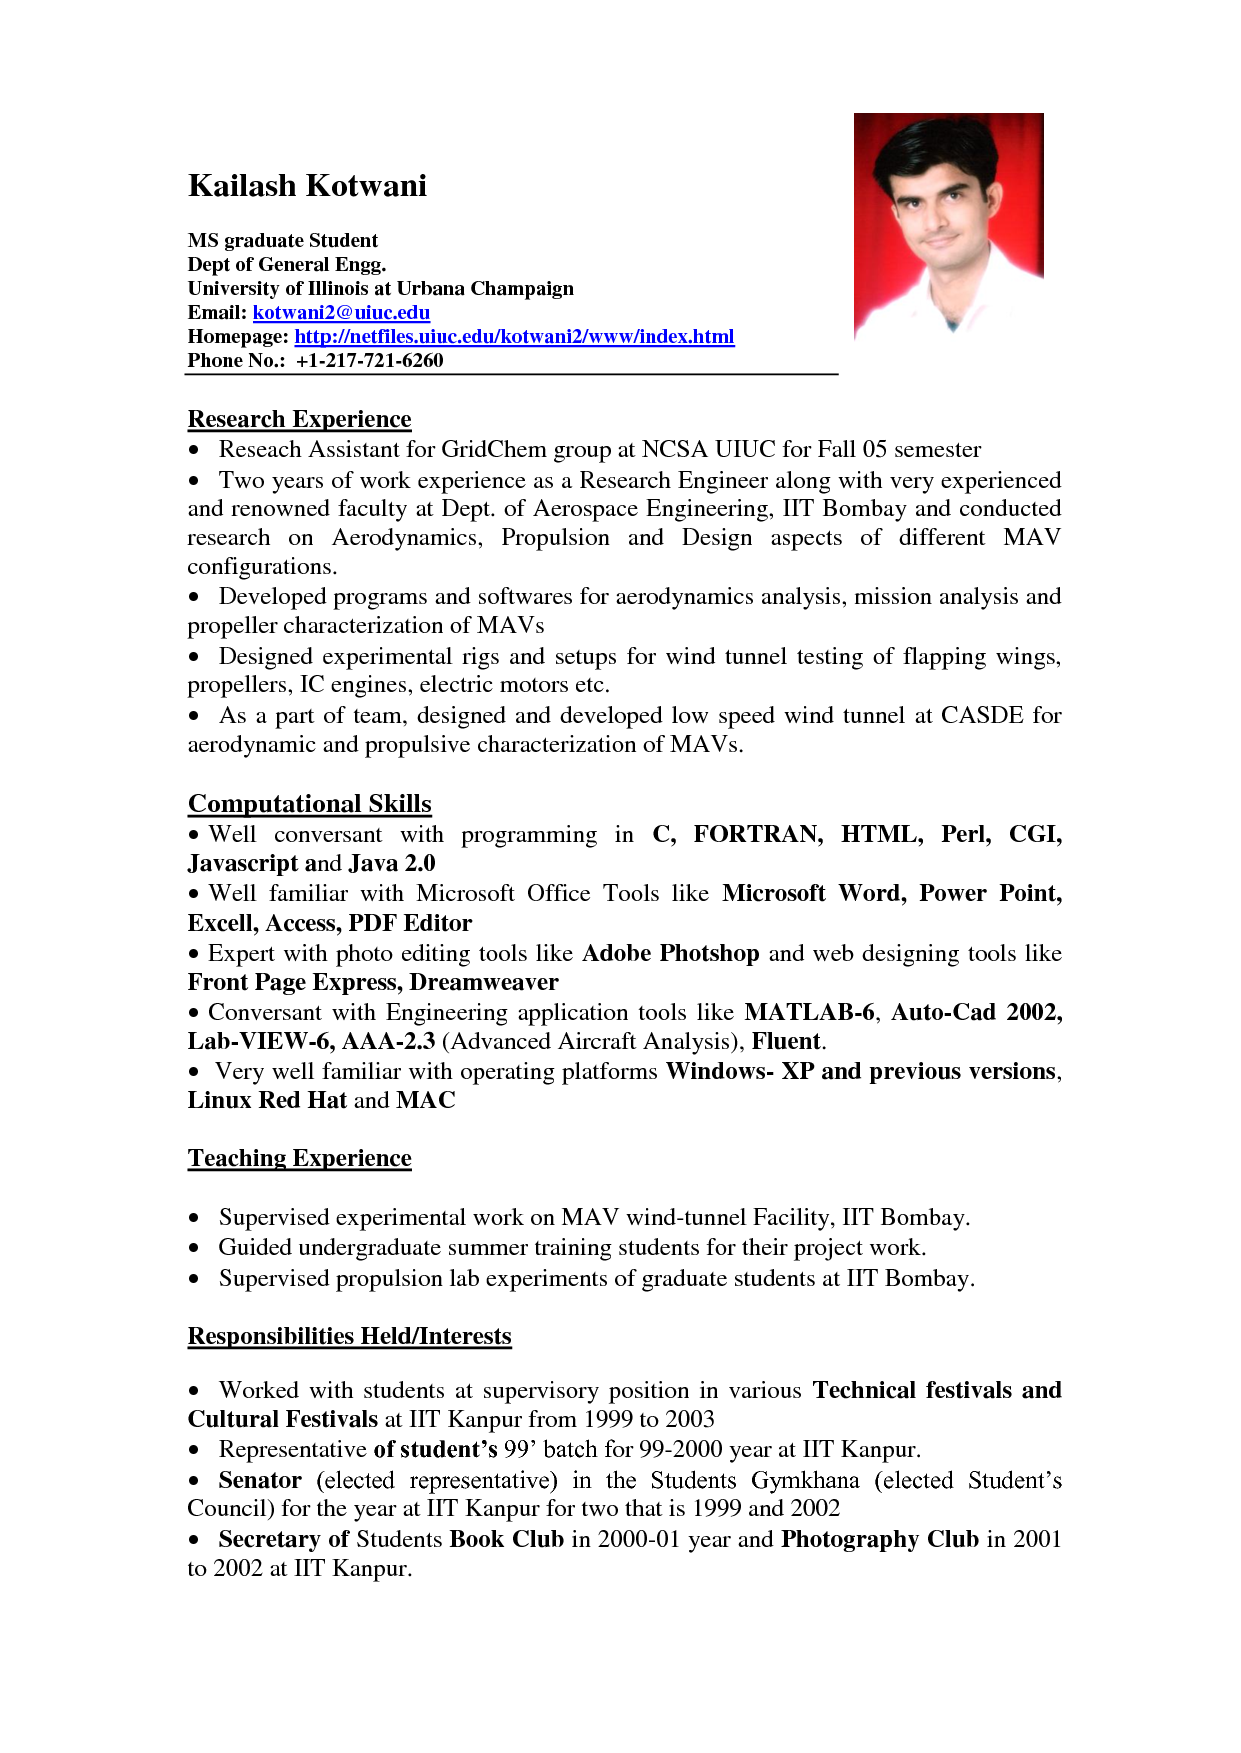 Delightful High School Student Resume Examples No Work Experience No Work Experience  Resume Content. How To Write A Resume Resume .